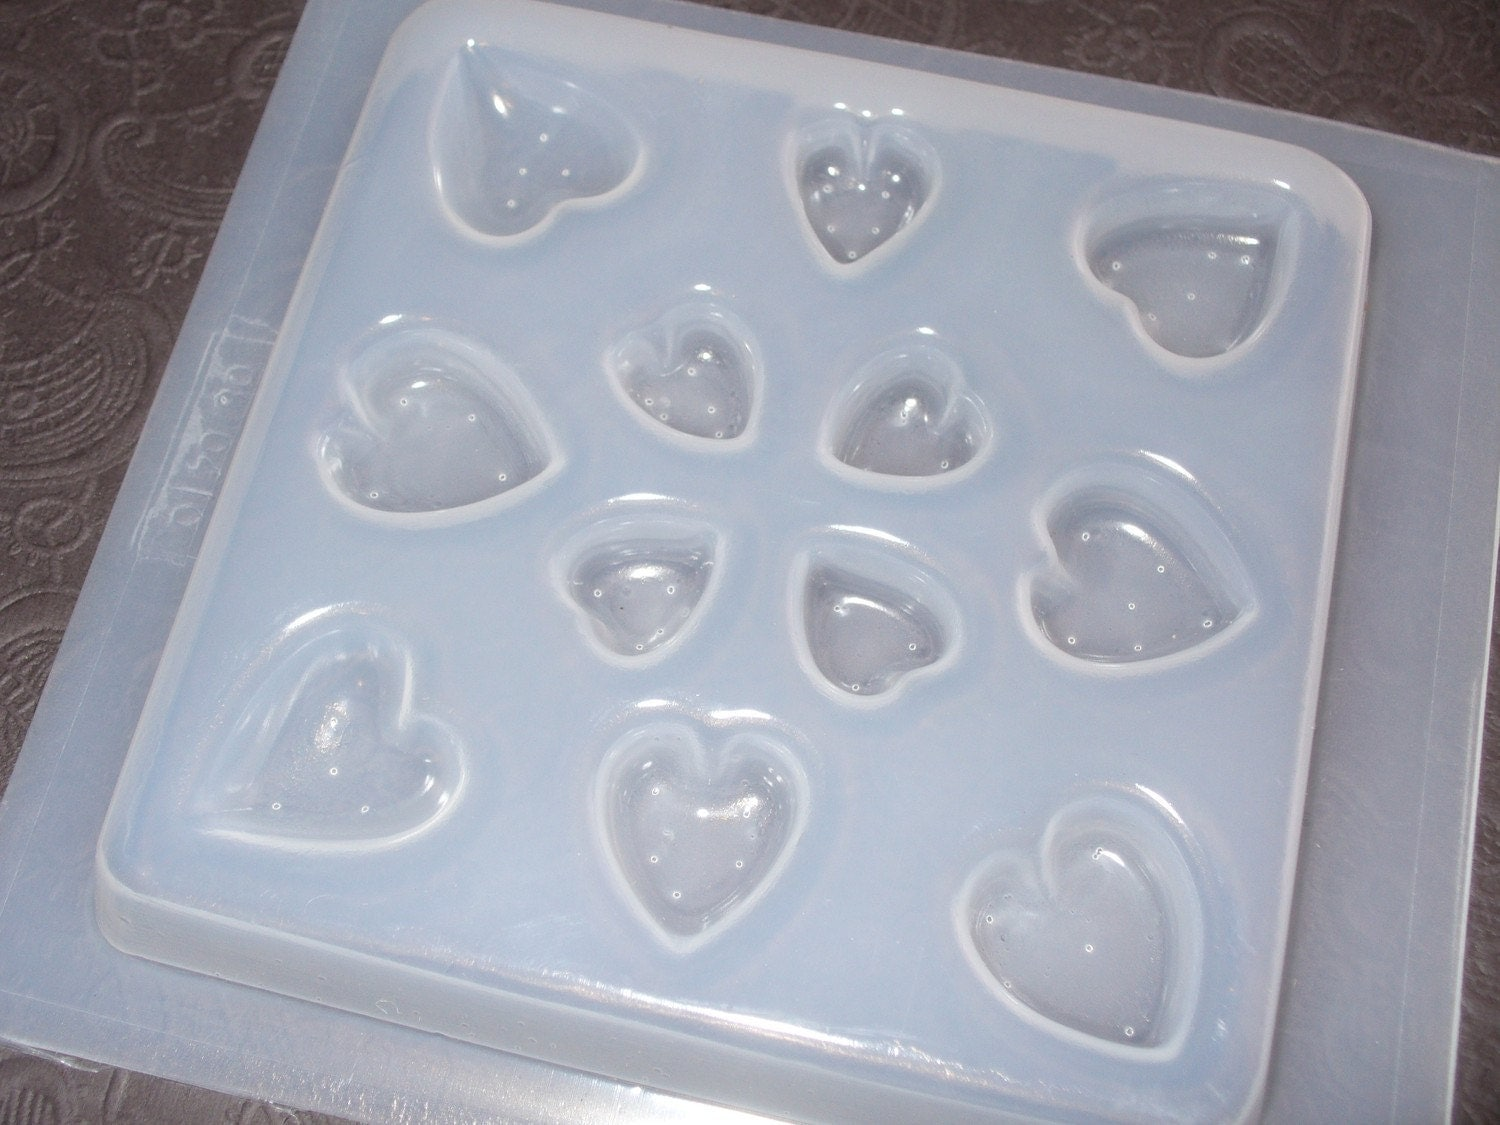 resin mold 12 count jewelry 5 sizes by stainedglasskarin